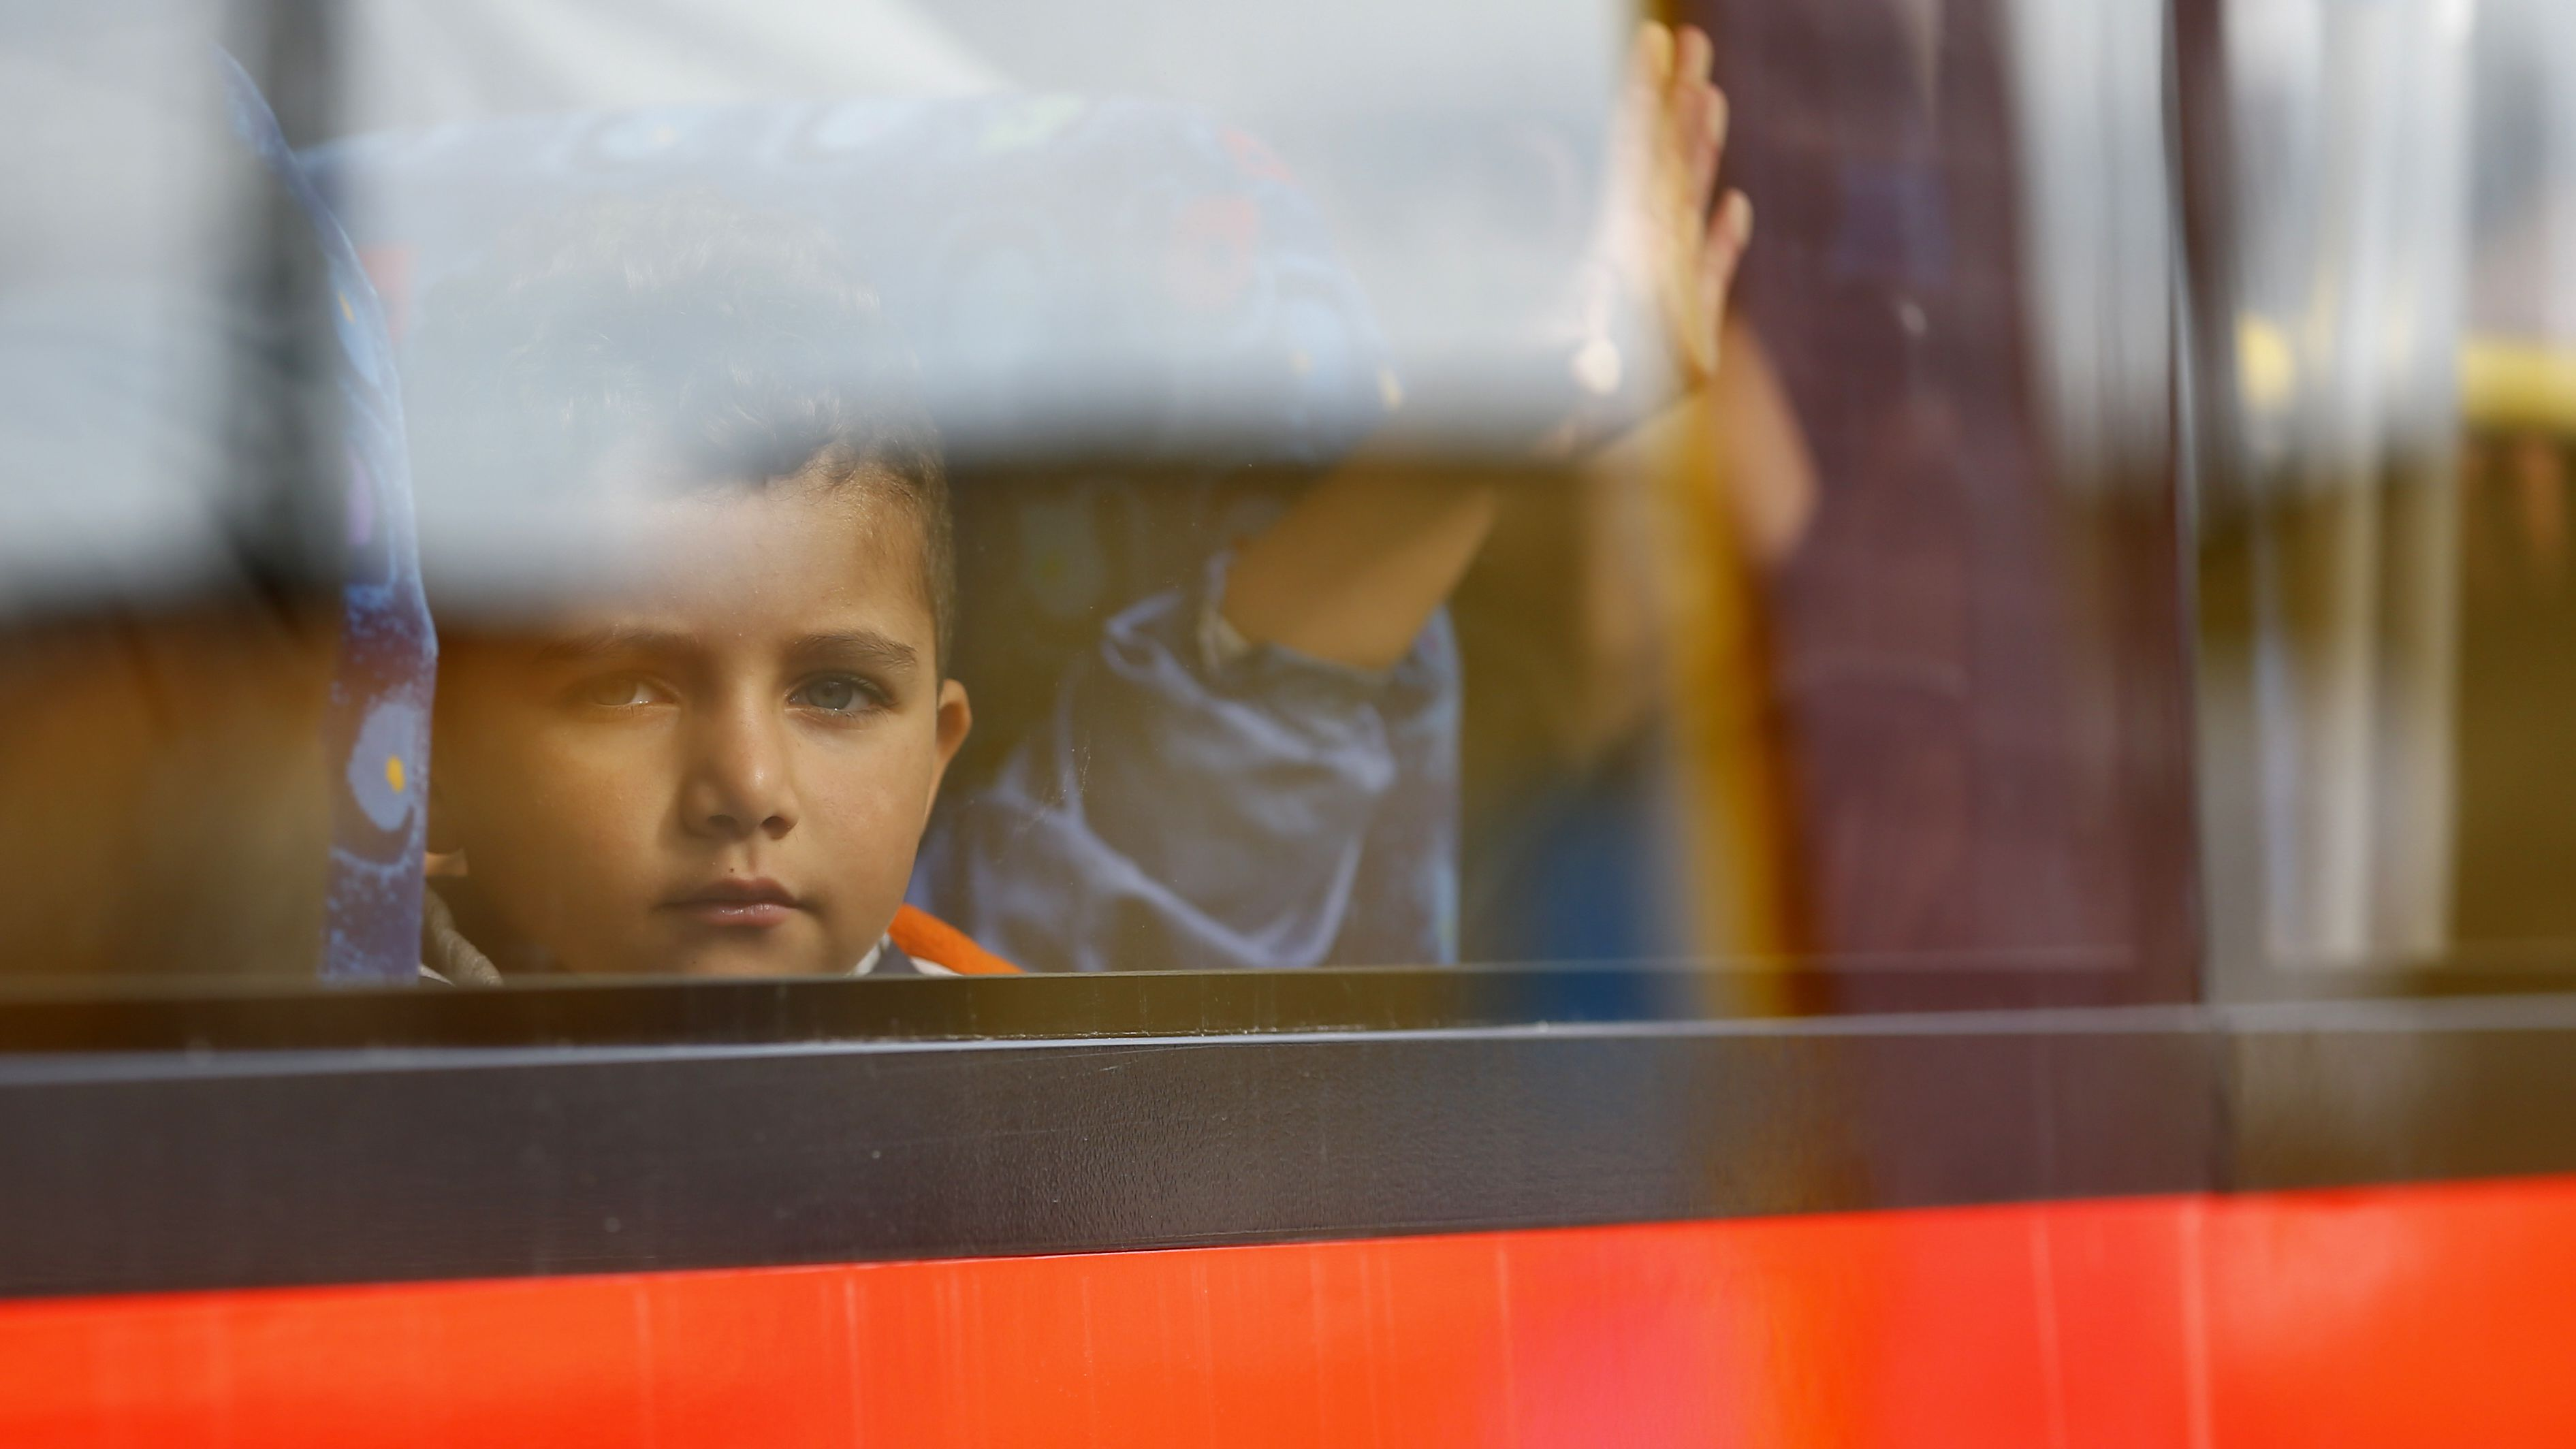 A migrant's child peers from a bus window near the border with Austria in Freilassing, Germany September 15, 2015. A total of 4,537 asylum seekers reached Germany by train on Monday despite the imposition of new controls at the border with Austria, the federal police said on Tuesday. The arrivals brought the number of asylum seekers who have entered Germany by train since the start of the month to 91,823, a police spokeswoman in Potsdam said. REUTERS/Dominic Ebenbichler